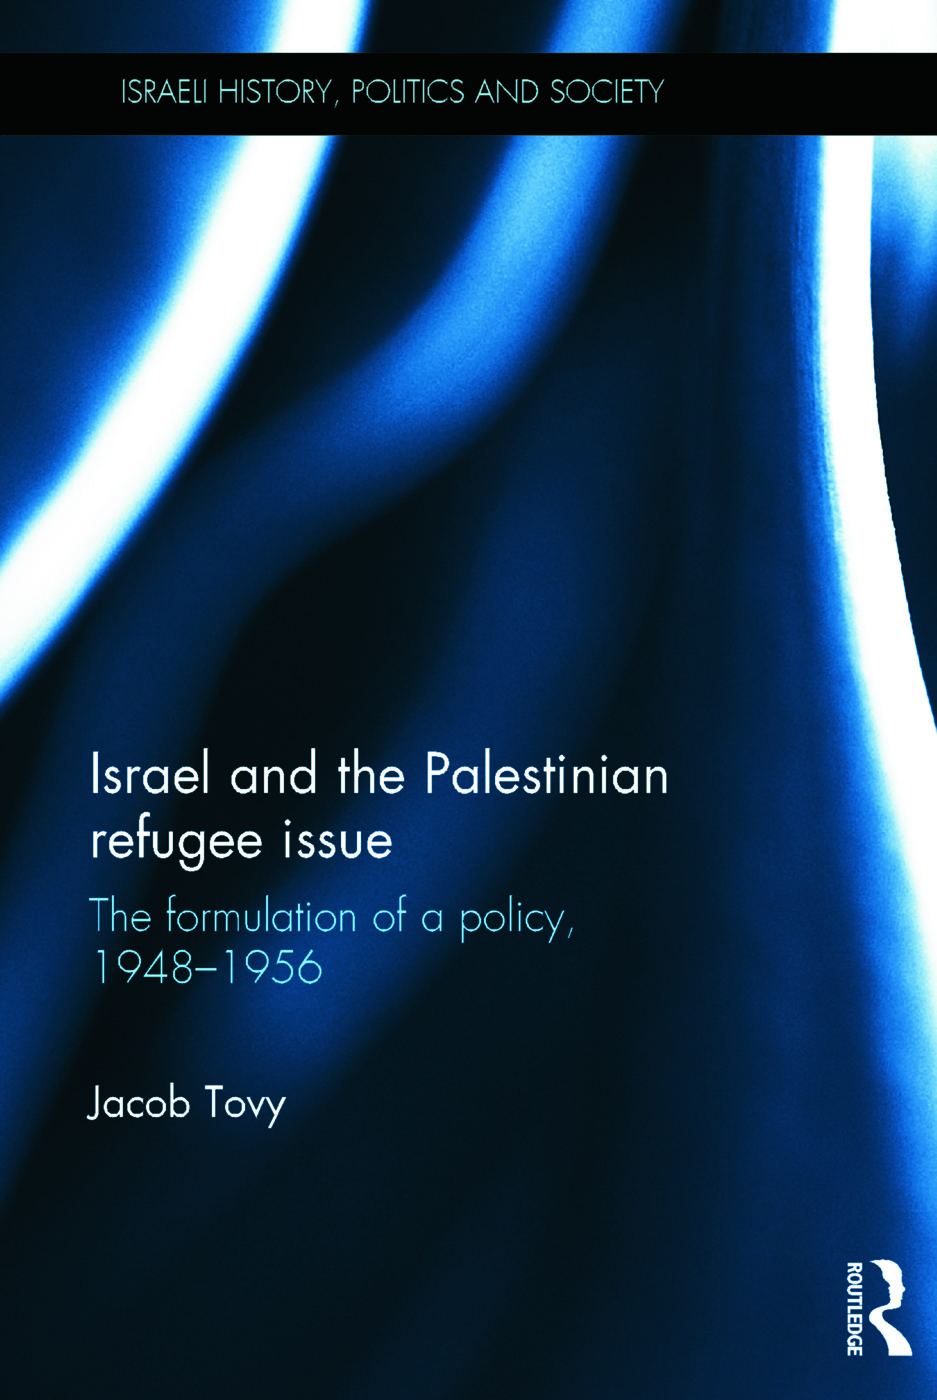 Israel and the Palestinian Refugee Issue: The Formulation of a Policy, 1948-1956 book cover